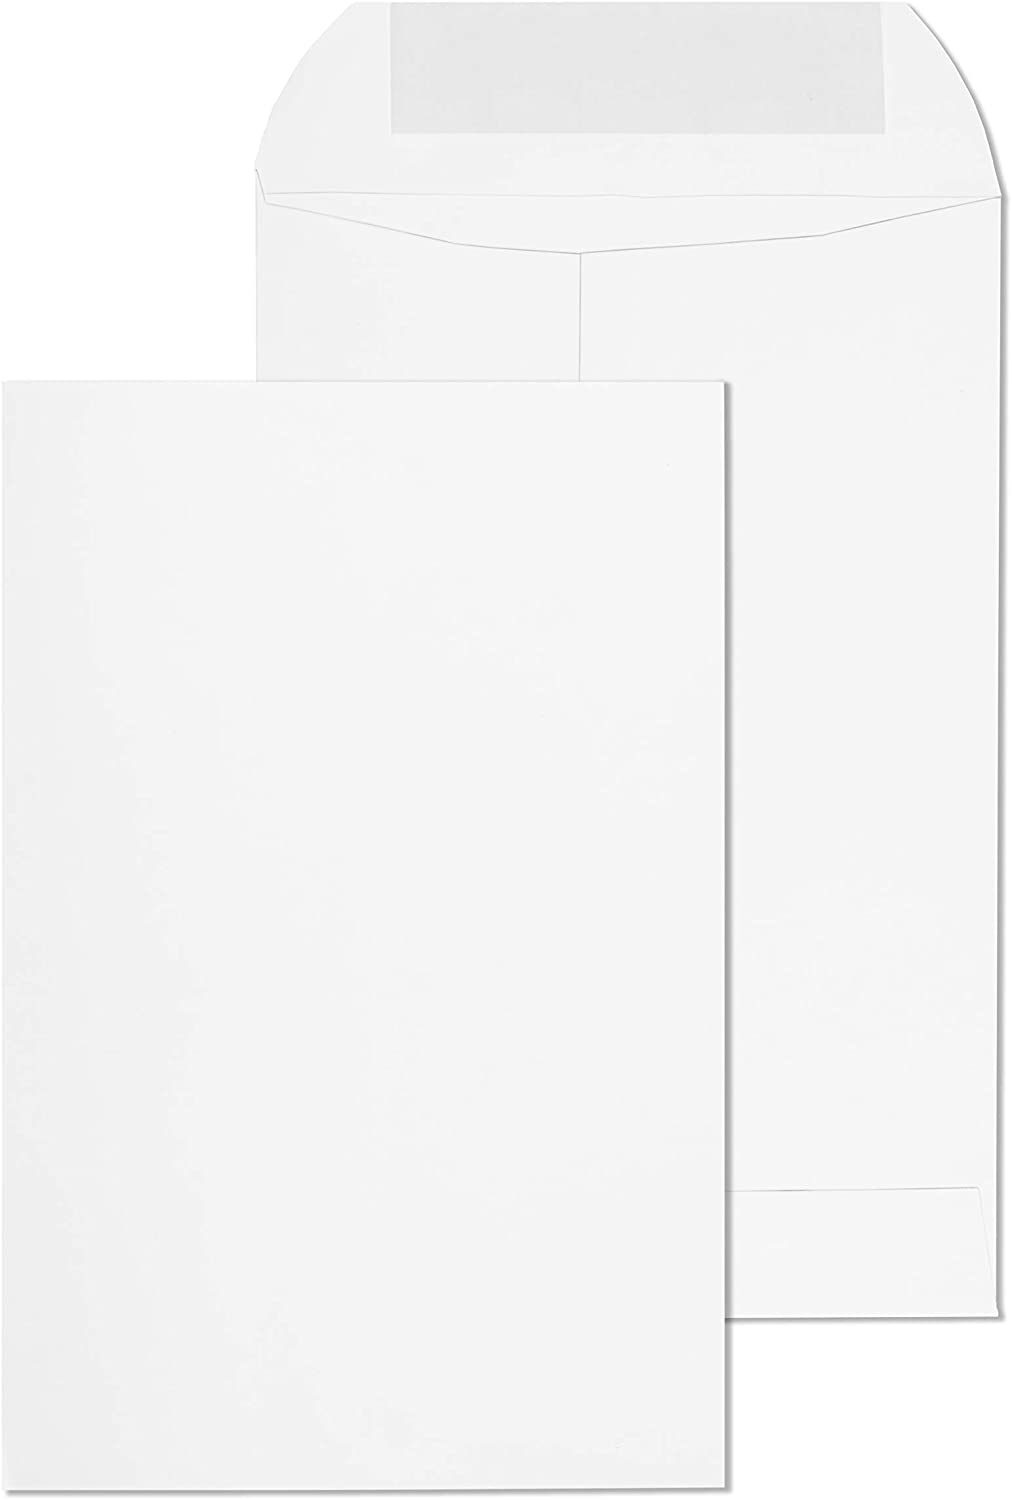 EnDoc 6x9 Open 2021 autumn and winter new End Self Max 50% OFF Seal Heavy - 28lb Envelopes Bright White